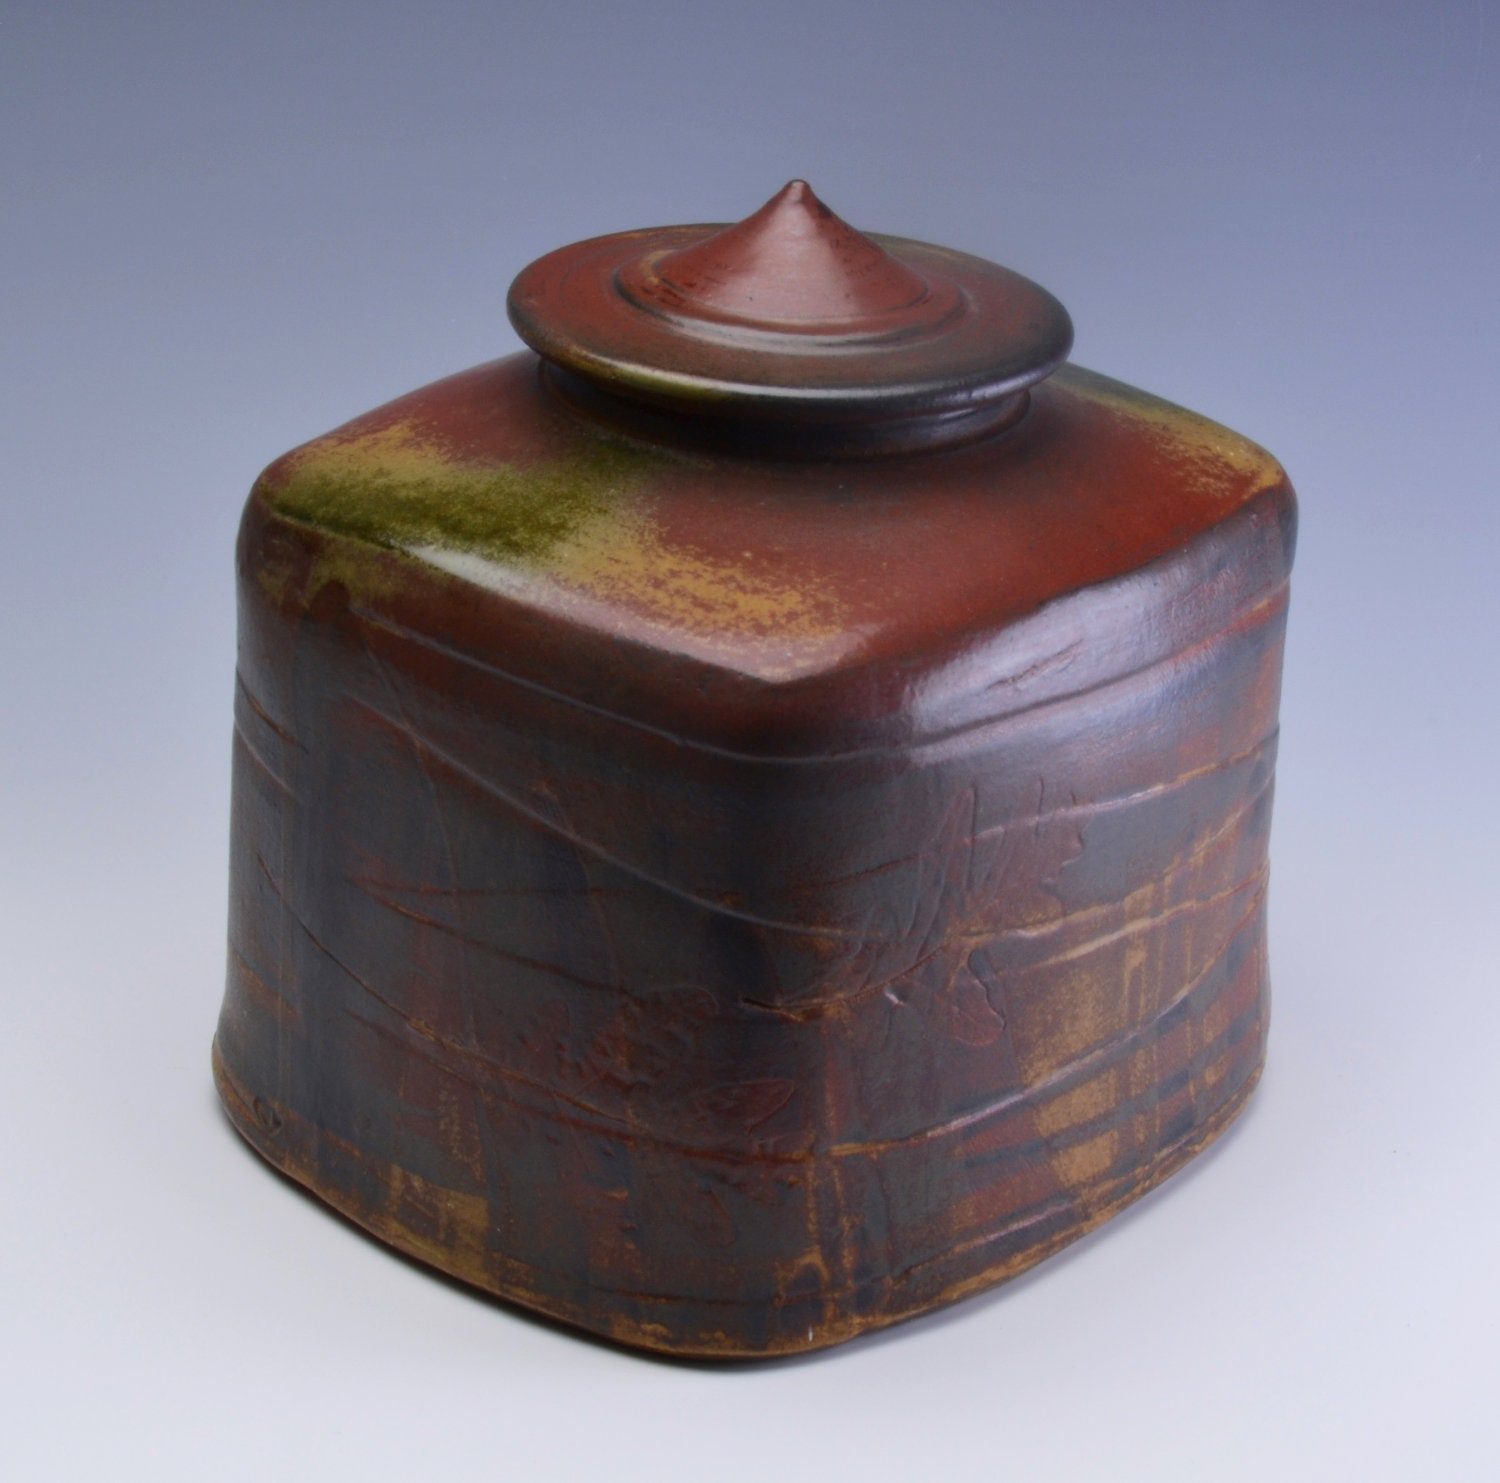 Memorial Cremation Urn One of a Kind Handmade Pottery